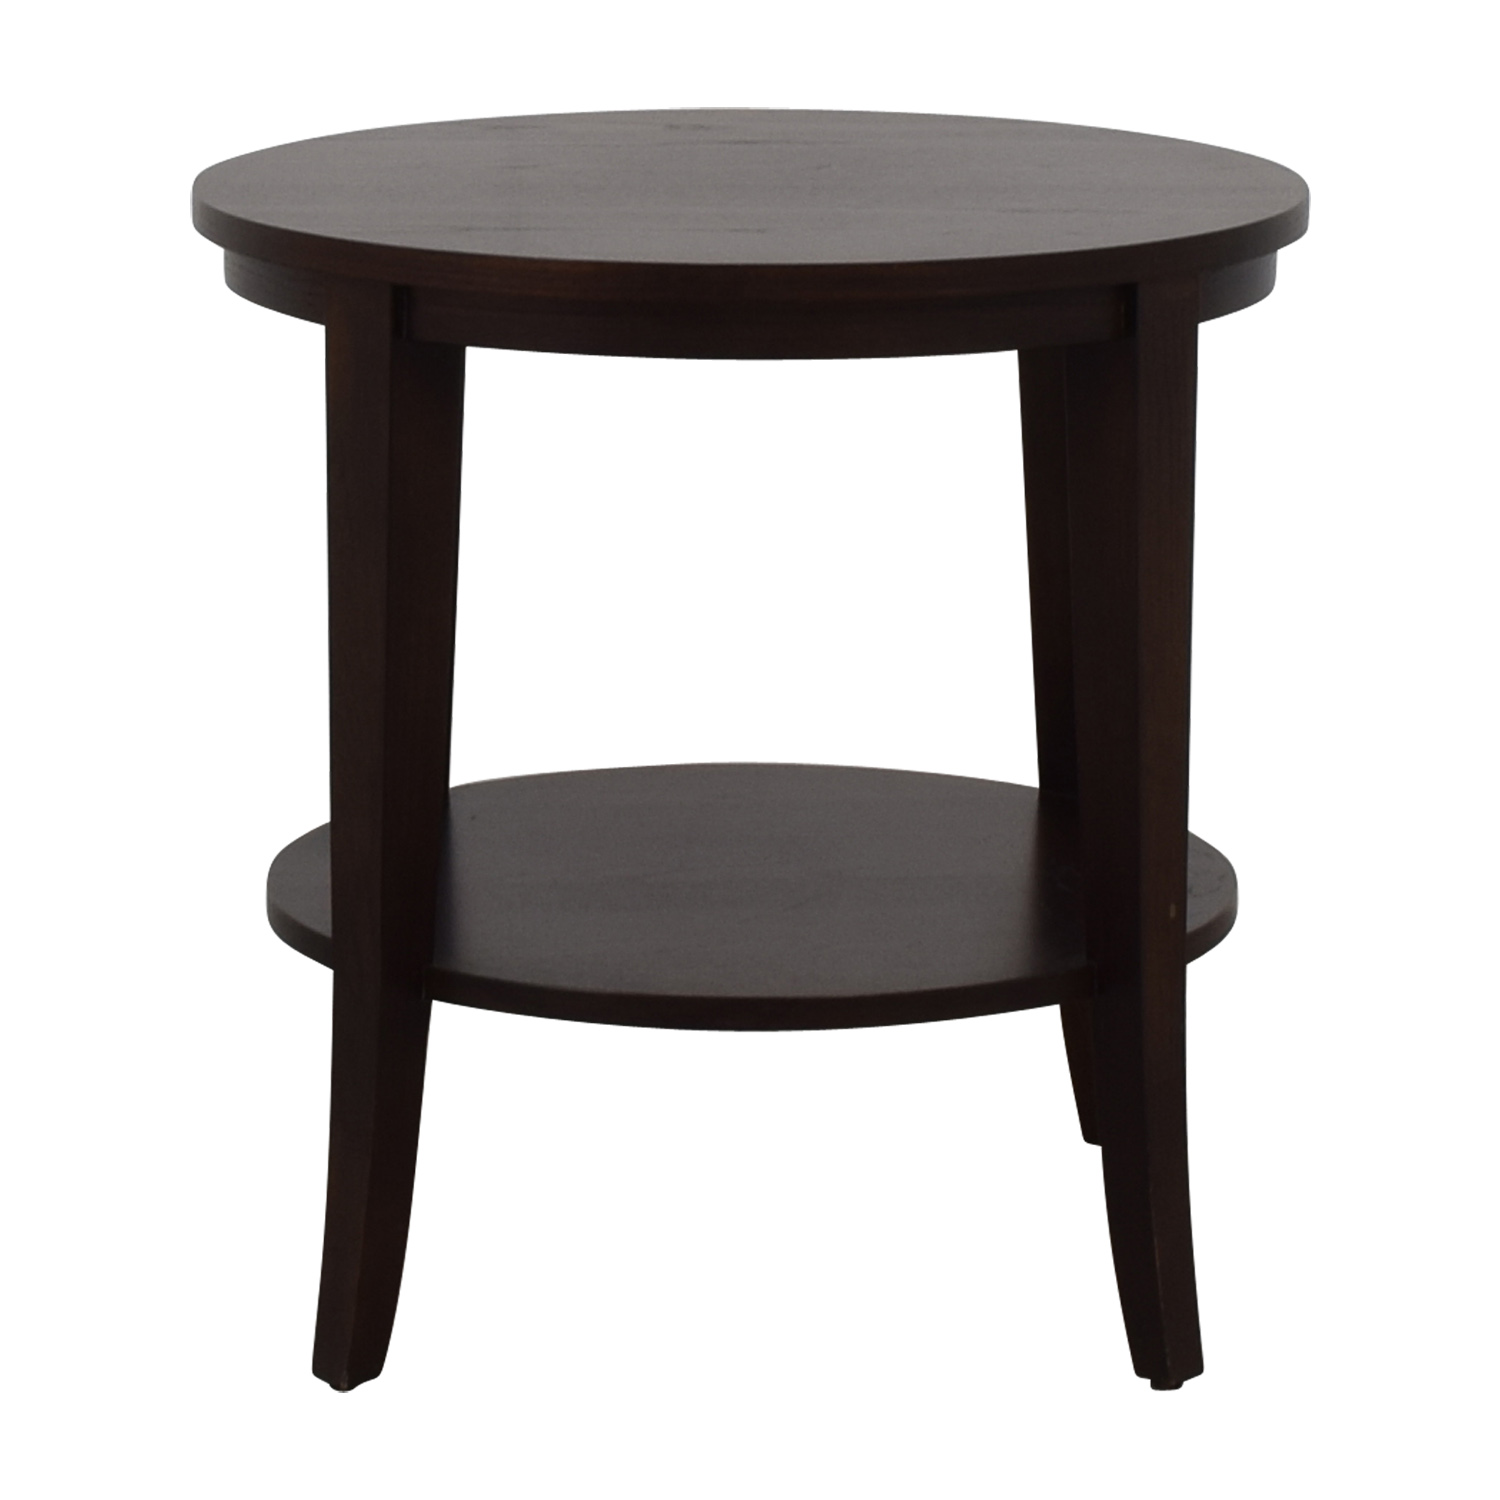 off ethan allen round wood accent table tables end natural sliding door ideas bottle wine rack square target entry for small spaces solid hardwood cherry bedroom furniture with